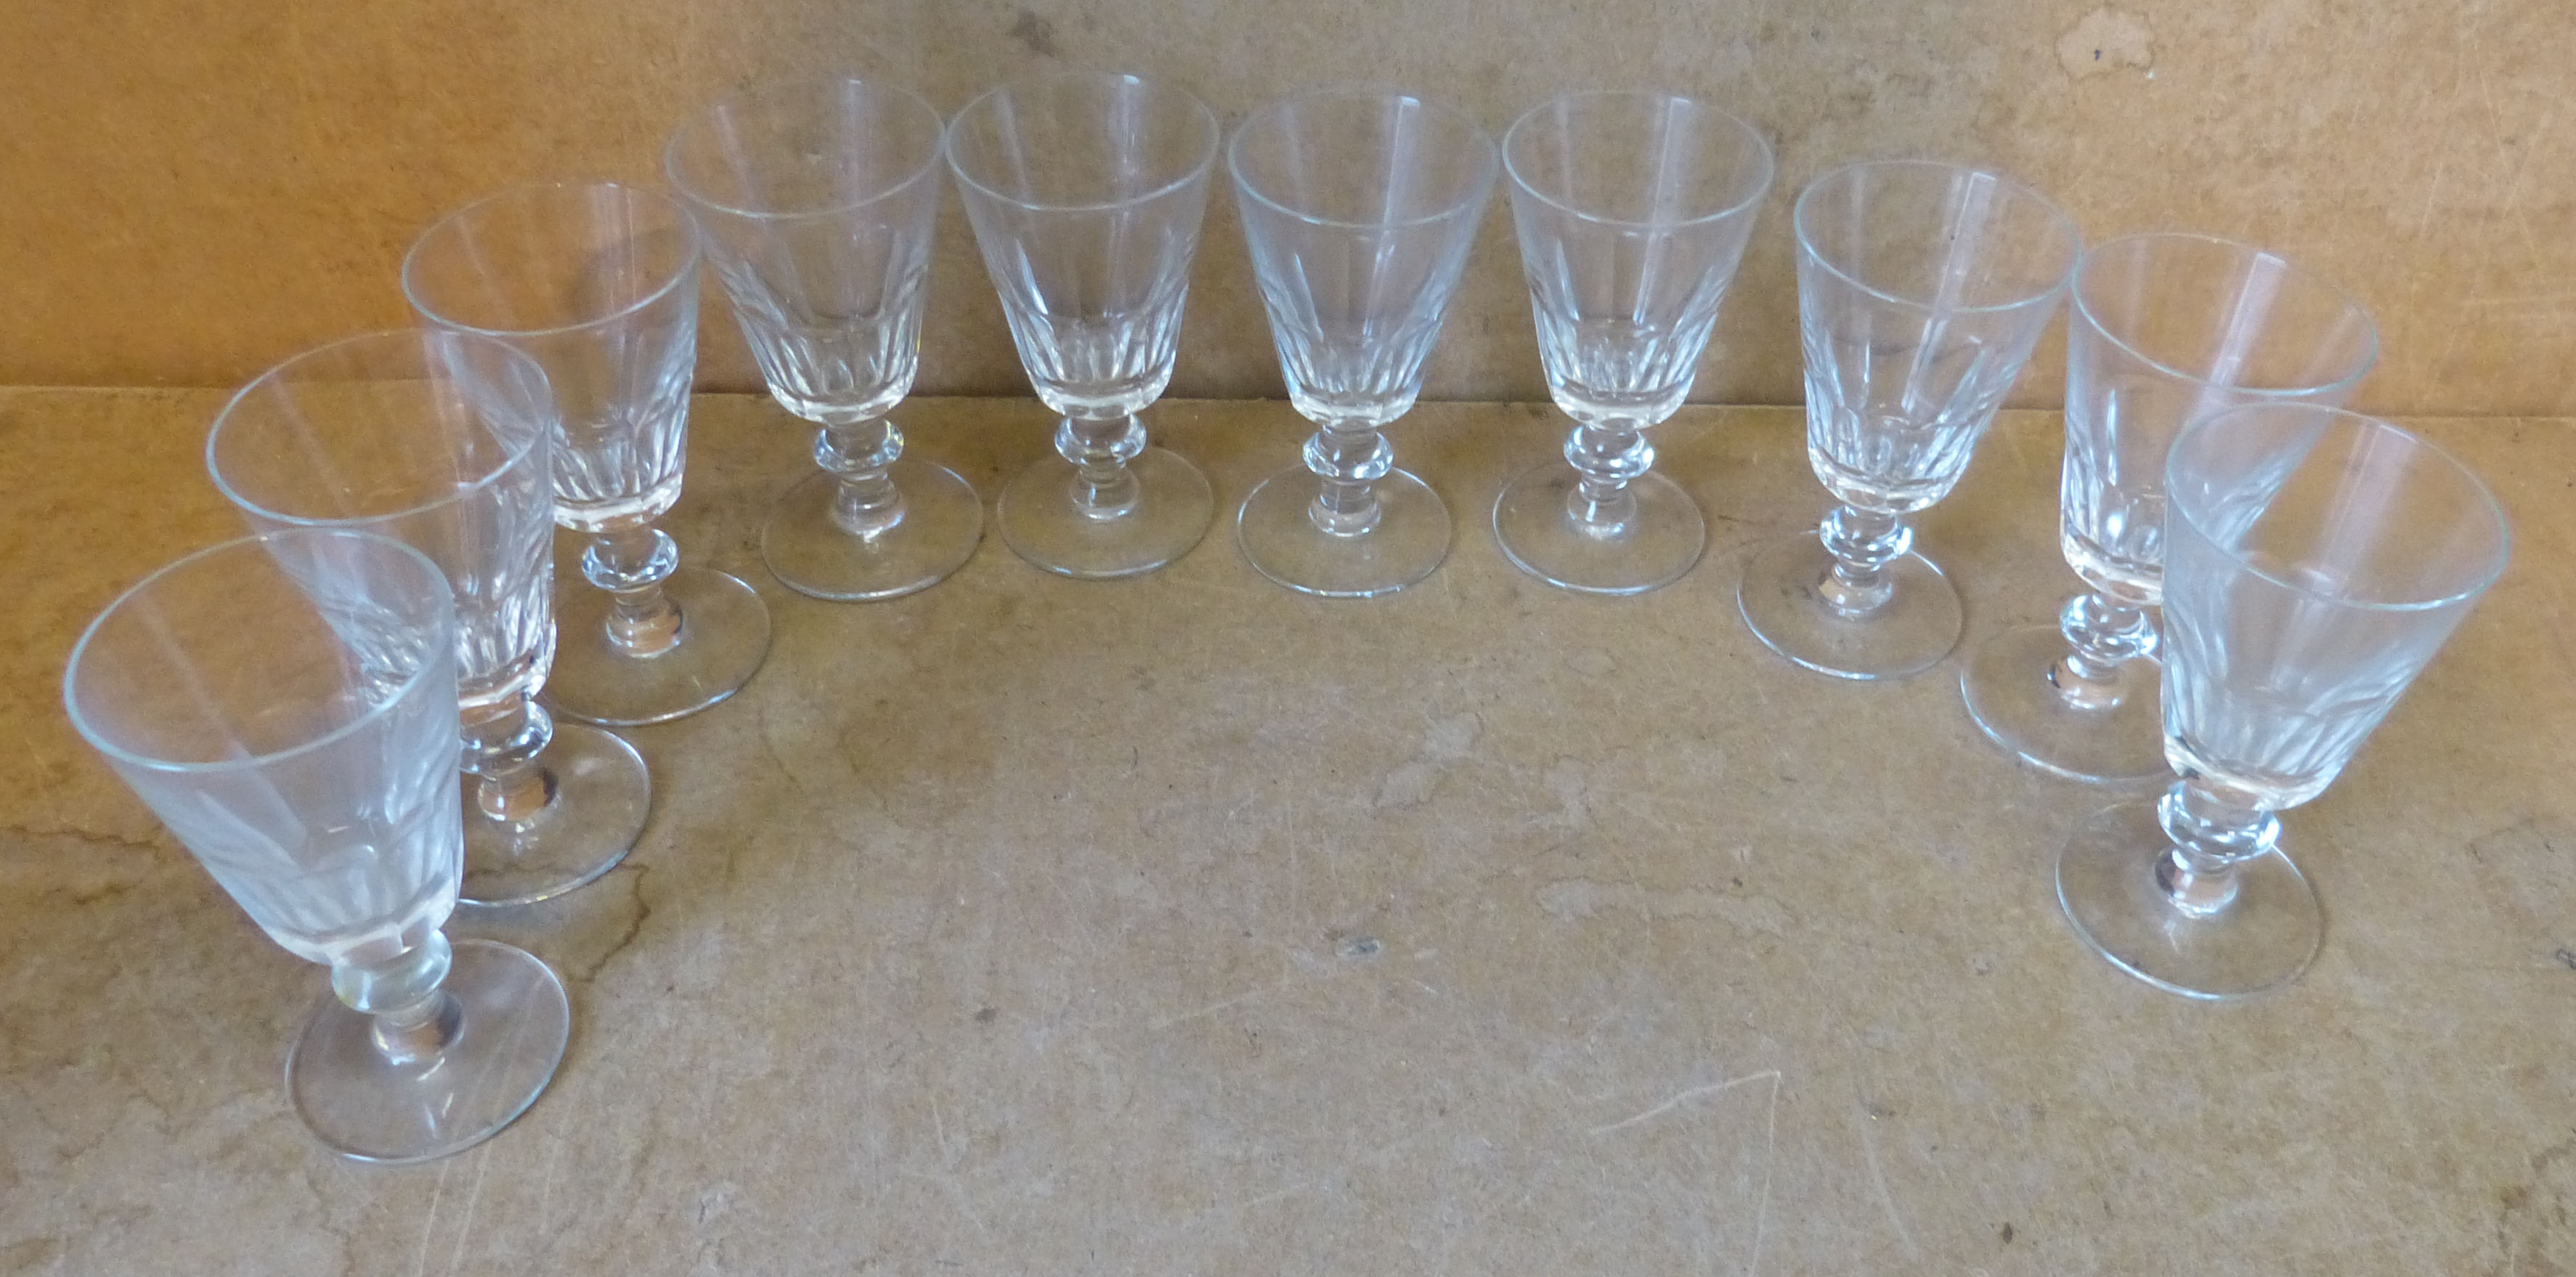 A Set of 10 Trumpet Shape Drinking Glasses having thumb pattern decoration on knob stems with round bases